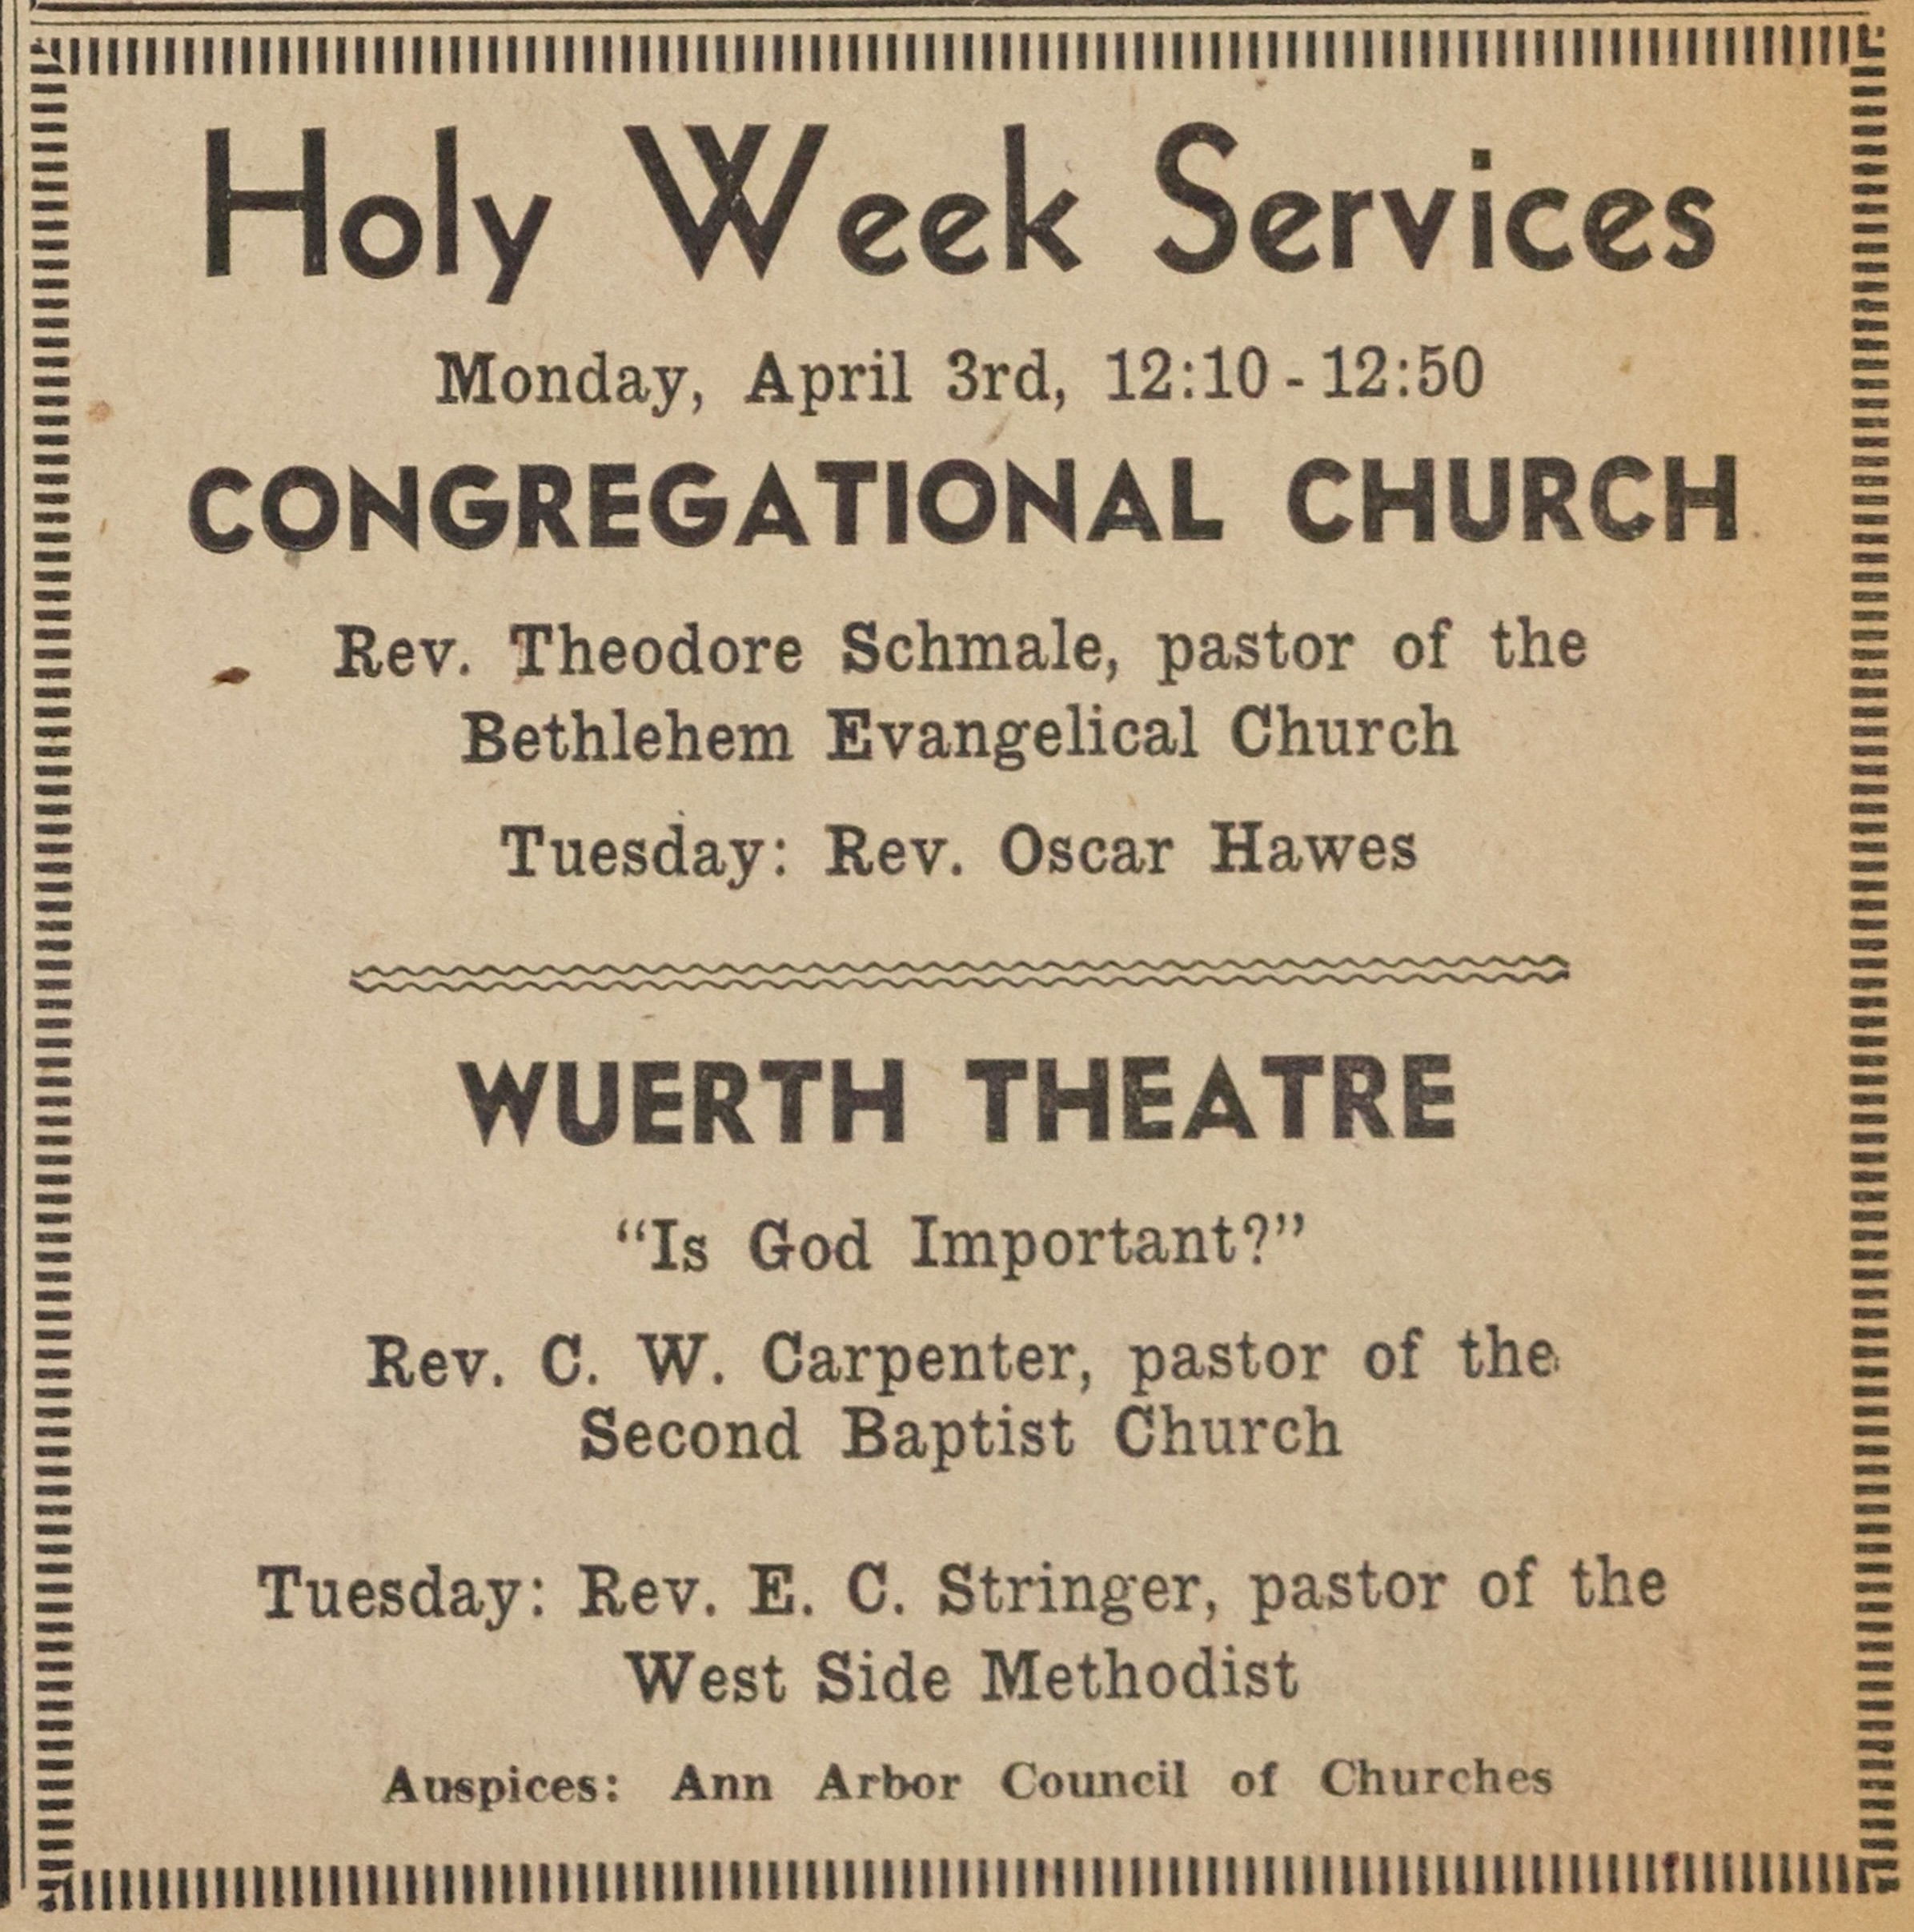 Holy Week Services, April 1944 image